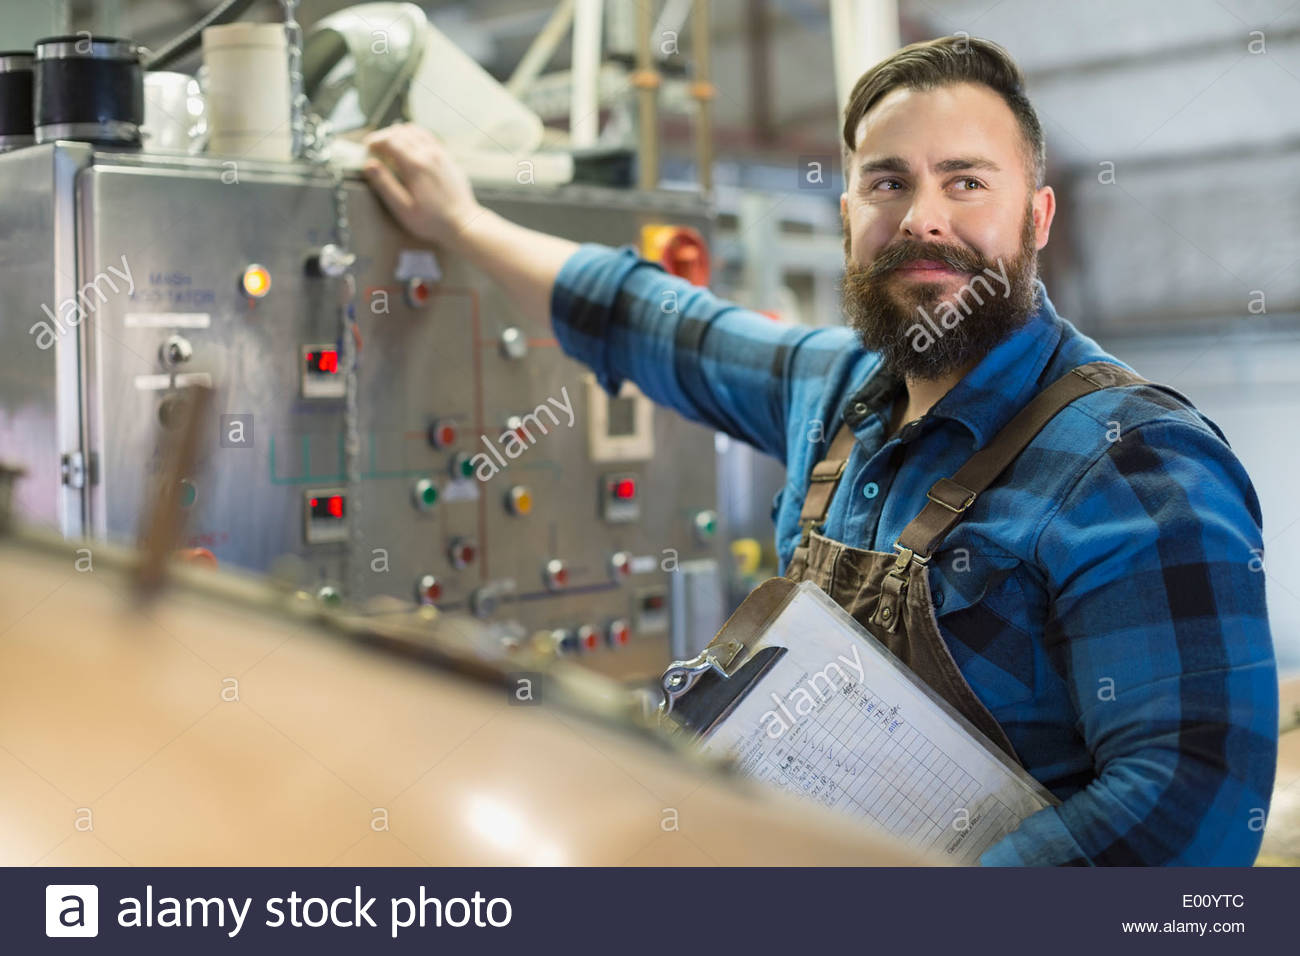 Confident brewery worker at control panel - Stock Image